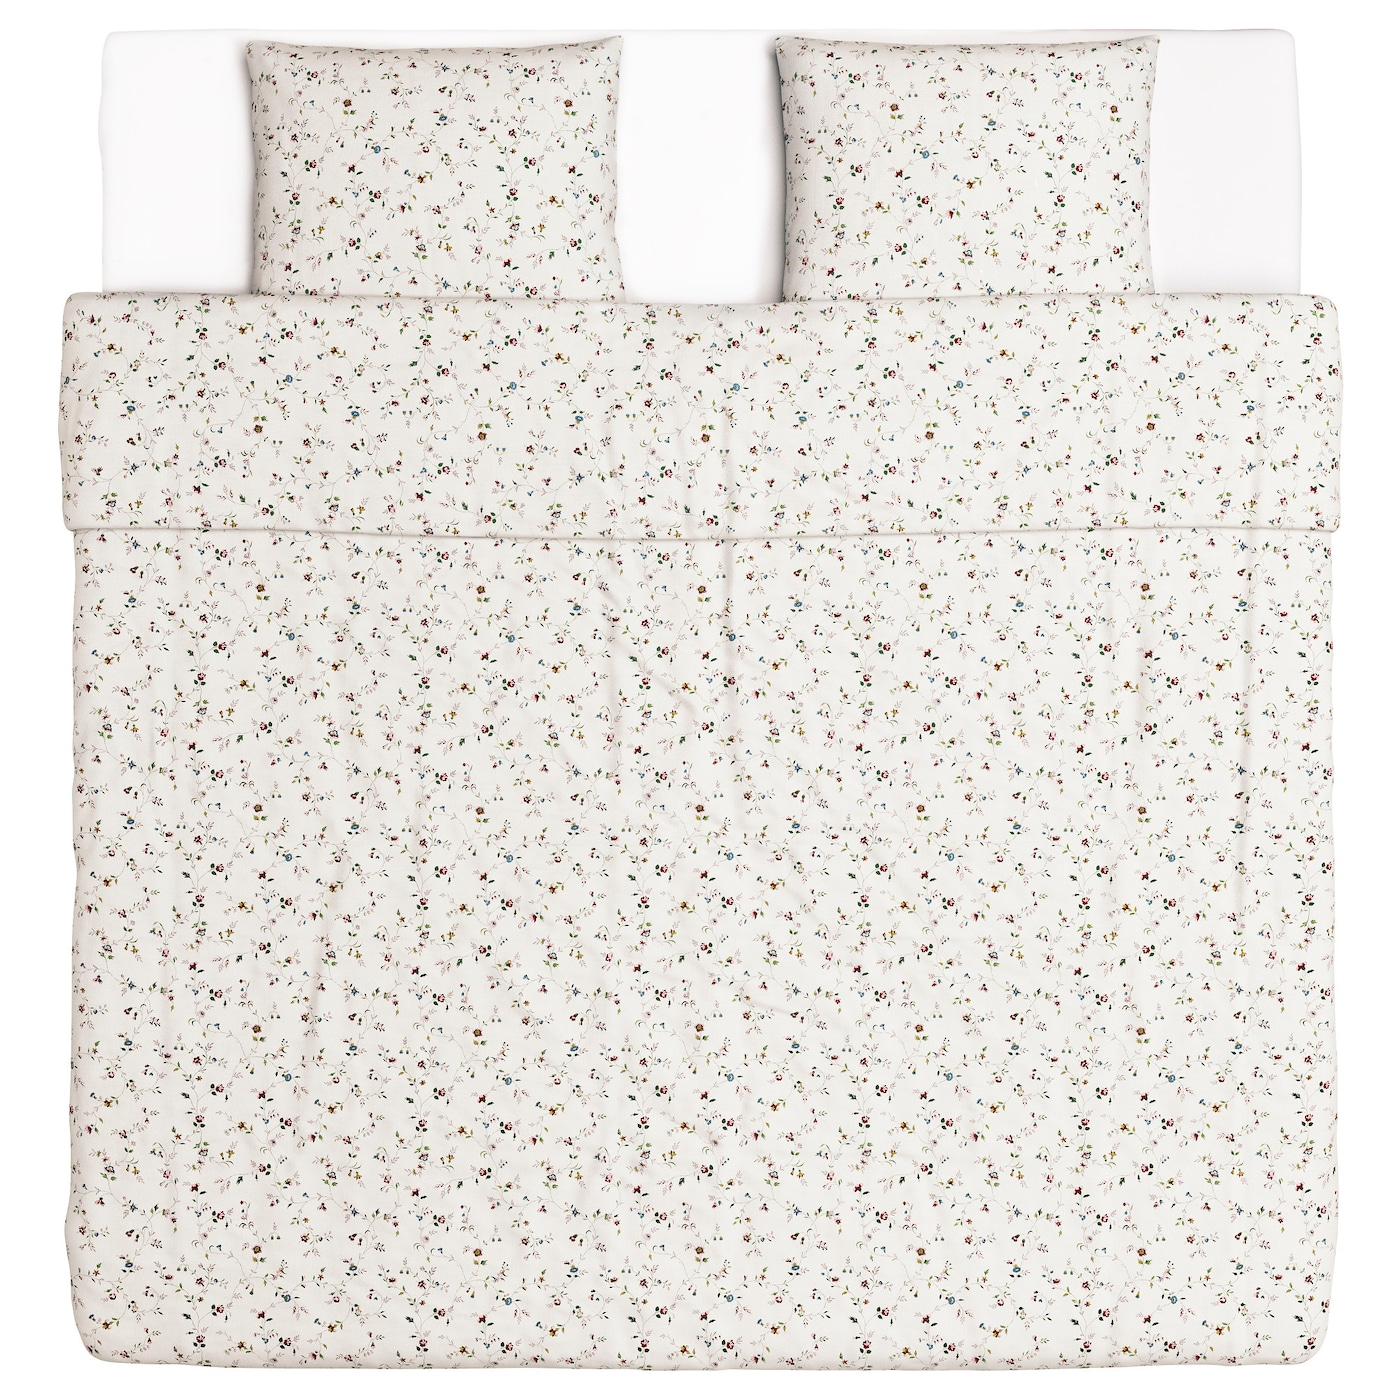 IKEA LJUS–GA quilt cover and 2 pillowcases Pure cotton that feels soft and nice against your